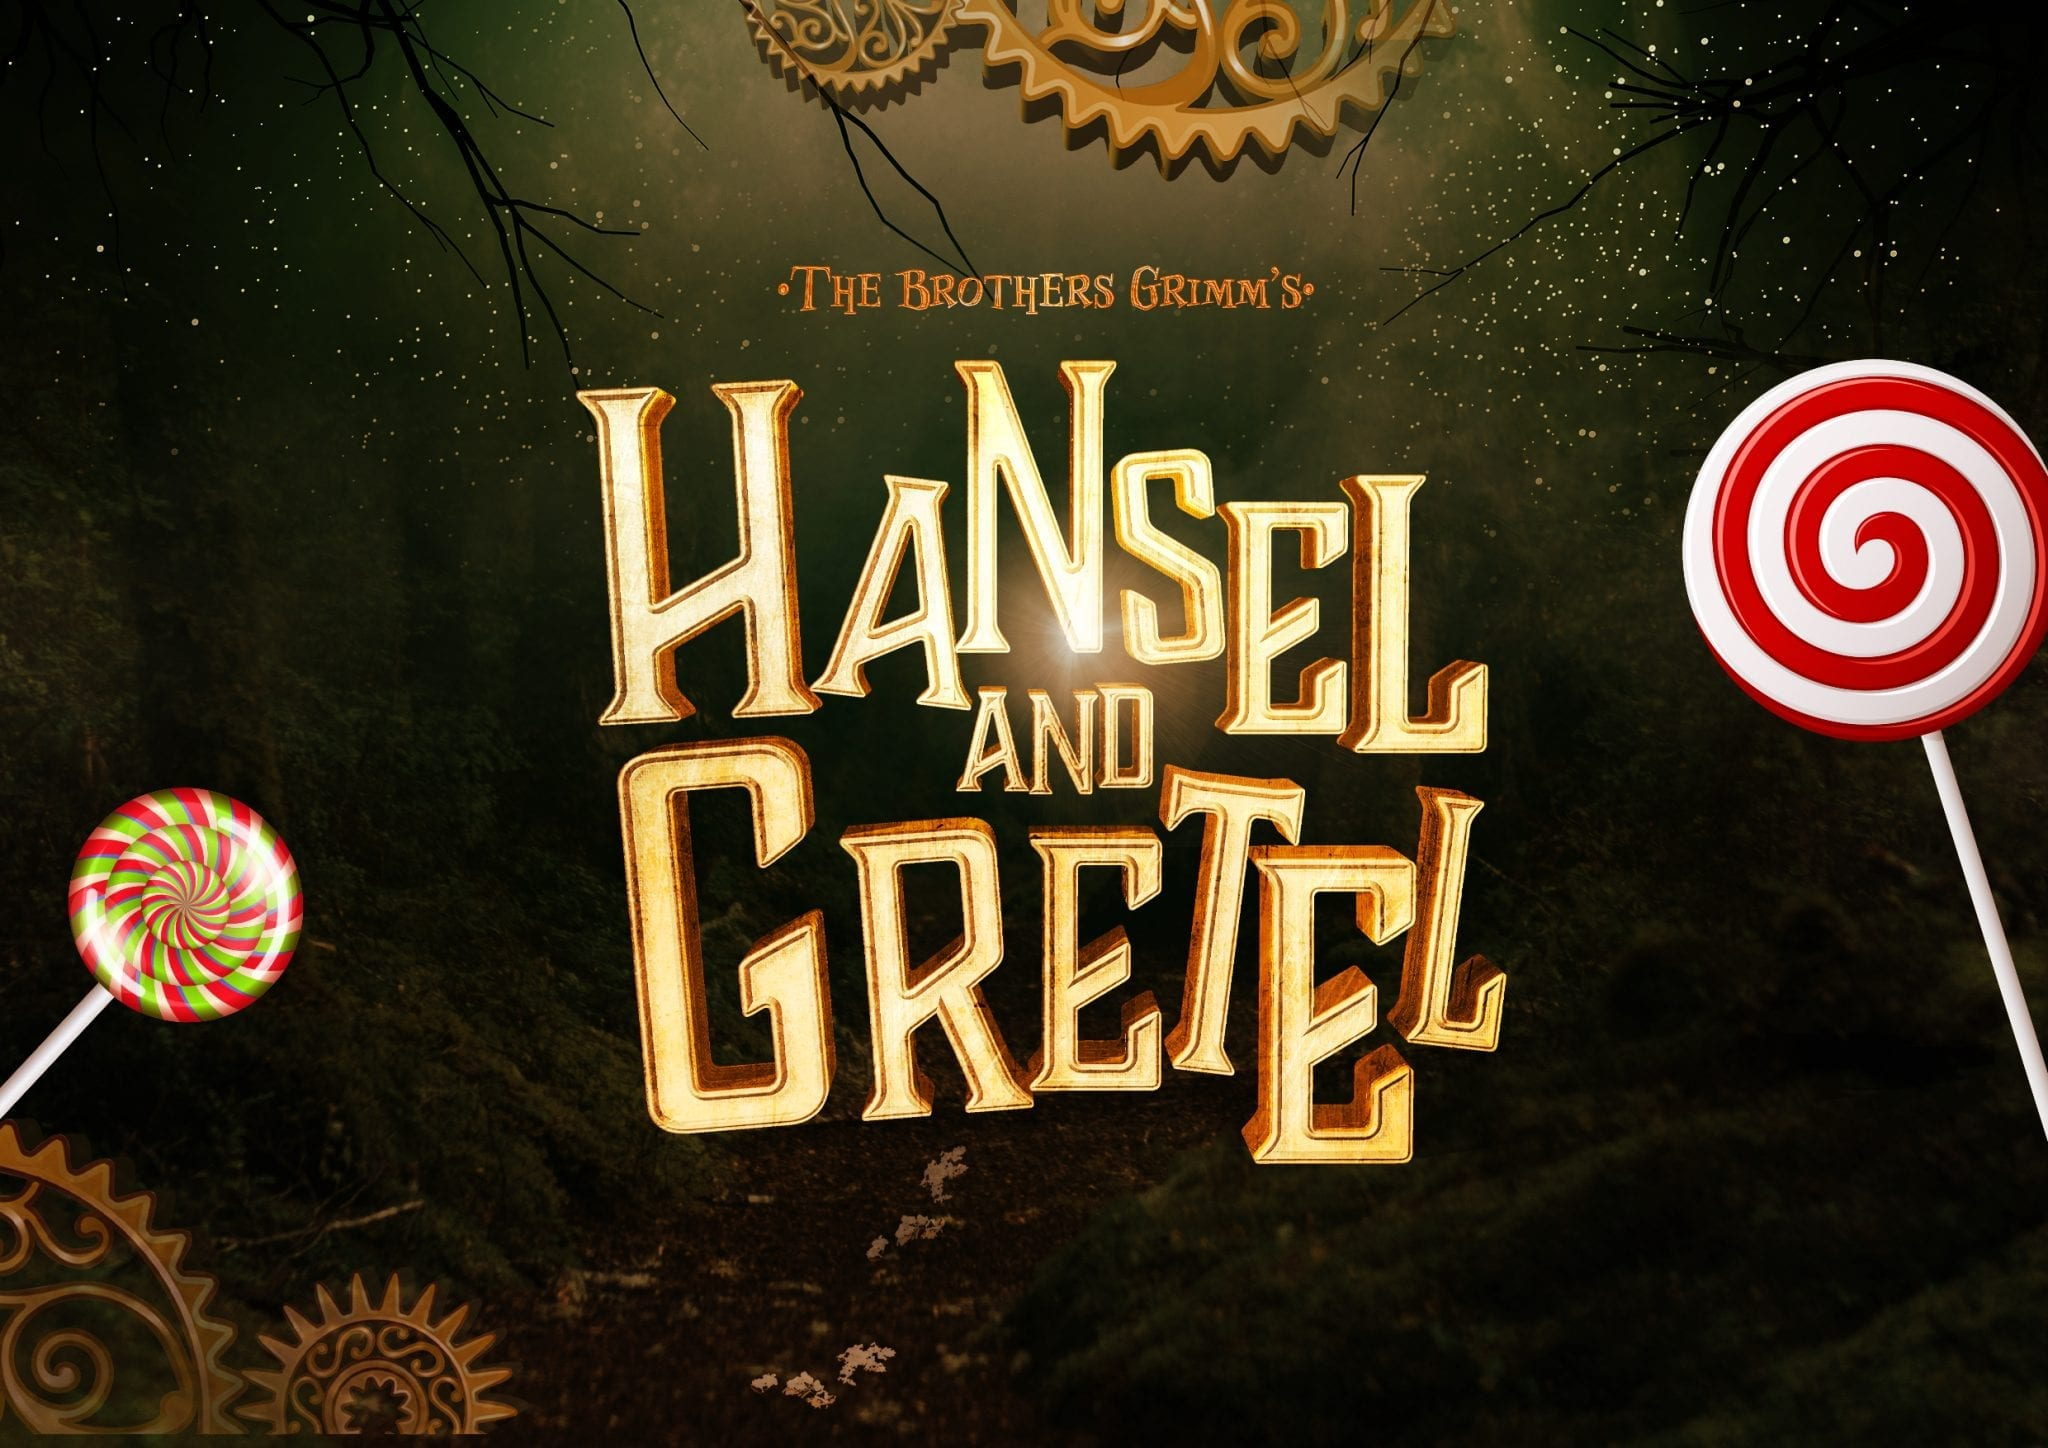 Theatre Space North East Hansel and Gretel